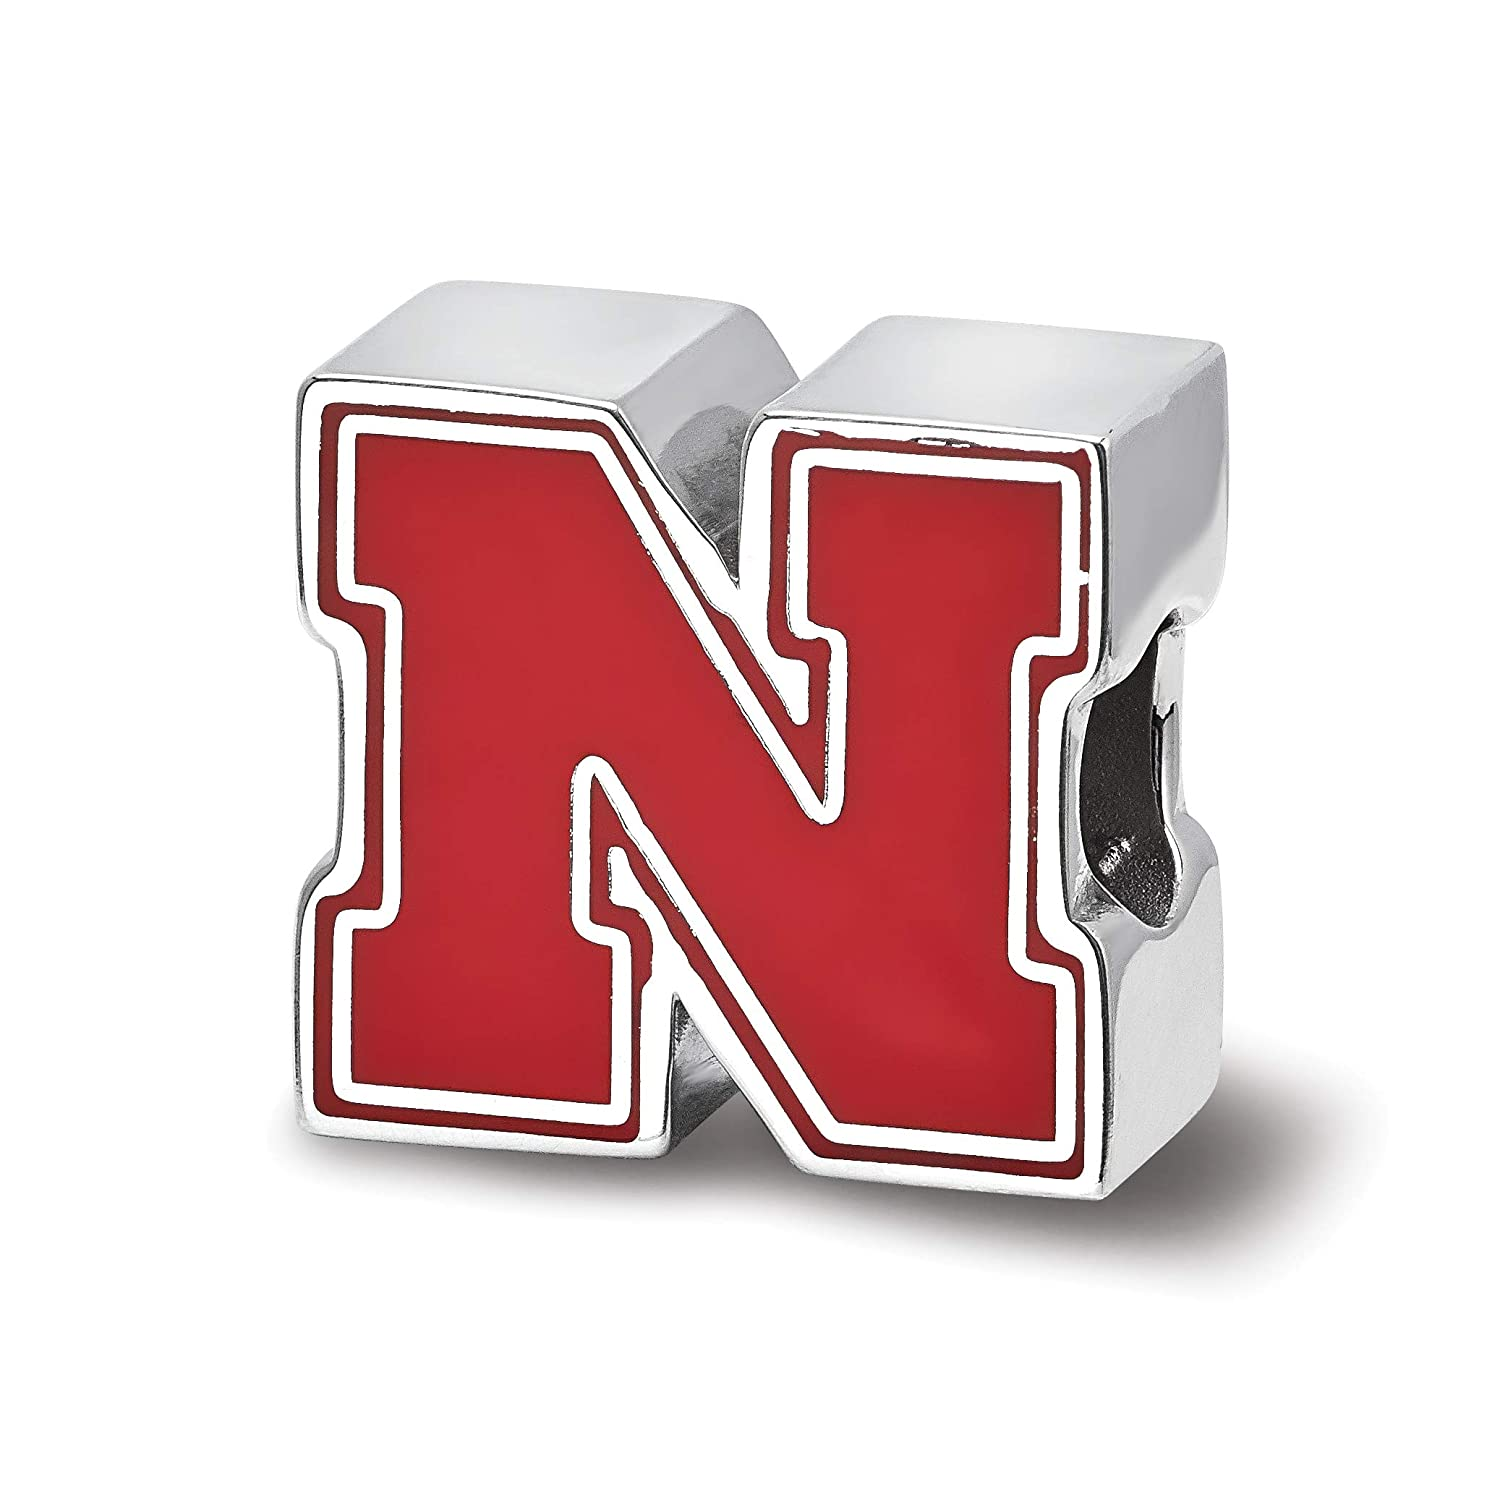 University of Nebraska Cornhuskers Red School Letter Extruded Charm Bead in Sterling Silver 12x13mm